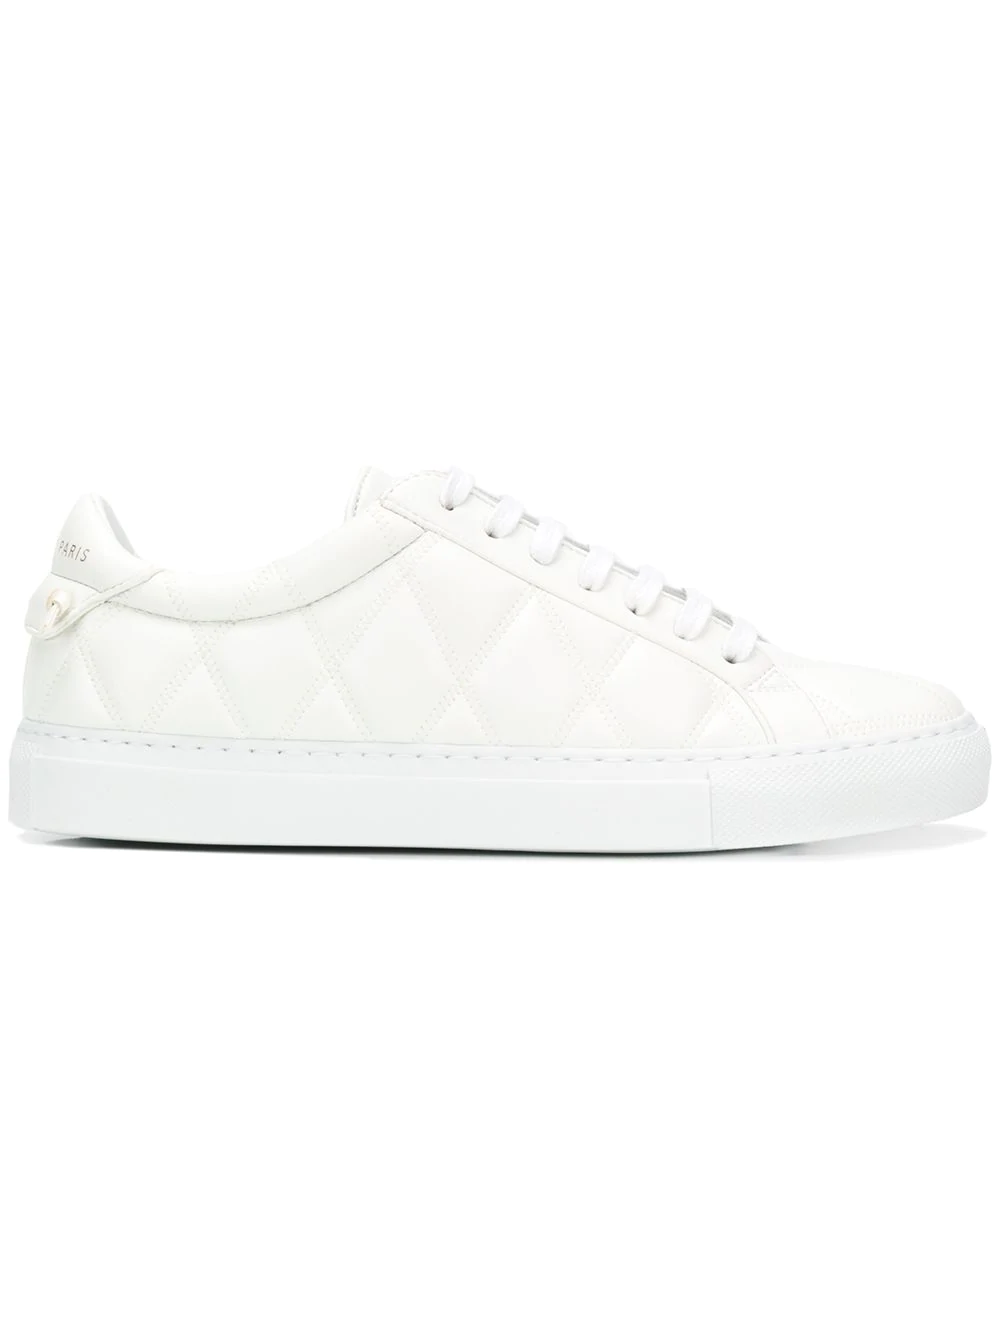 Givenchy White Logo Laces Urban Street Sneakers